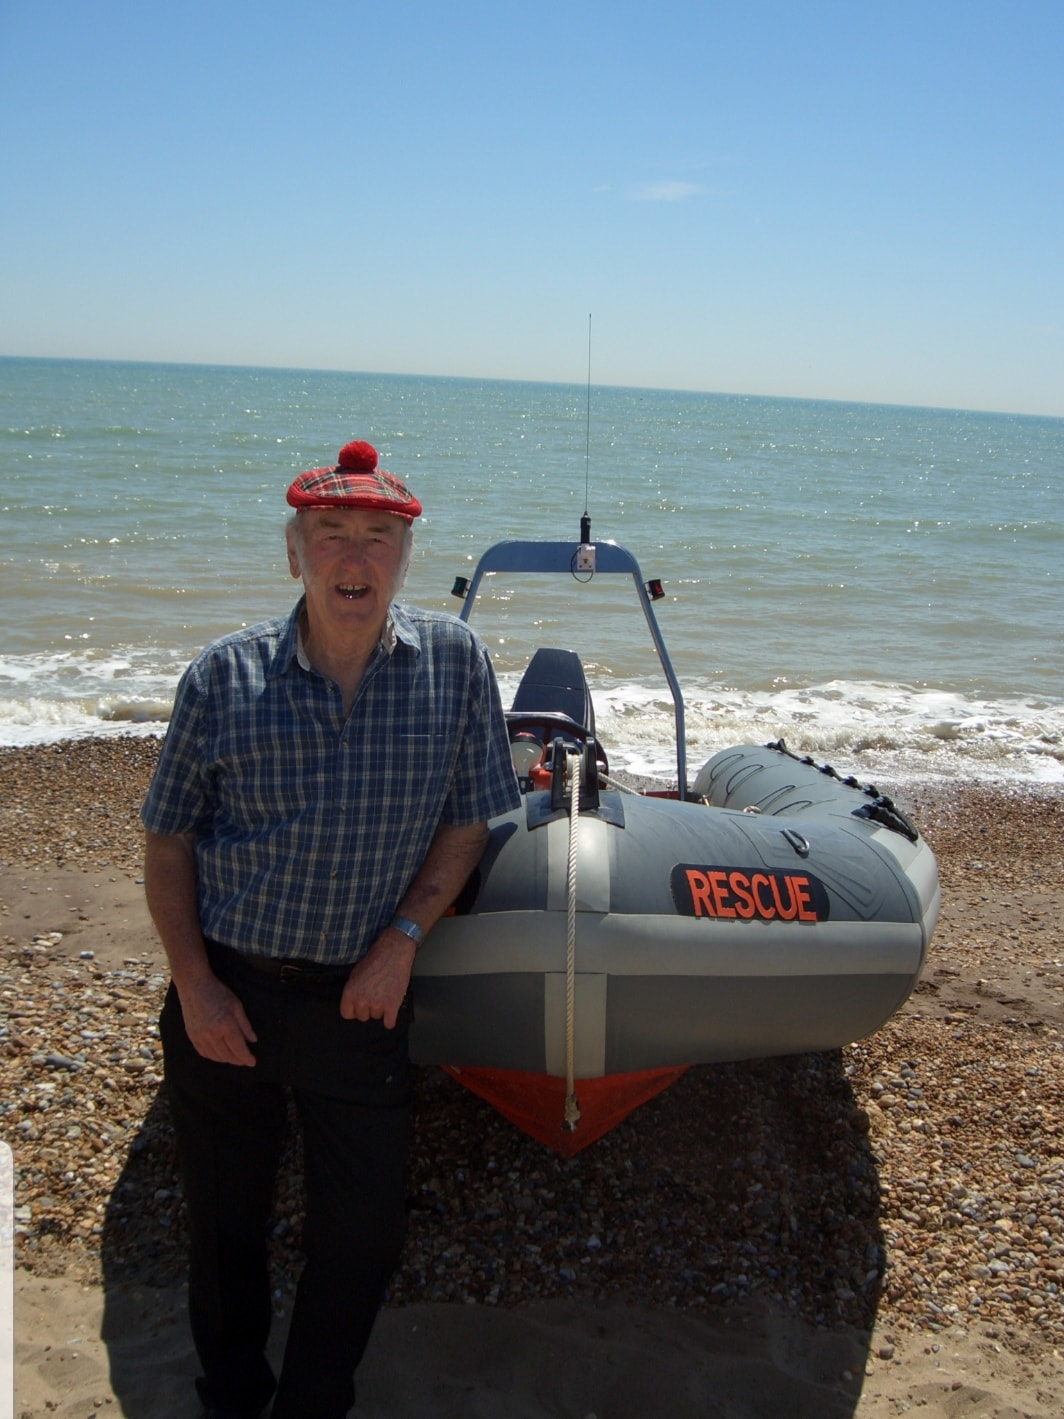 Sad News from Pett Level Independent Rescue Boat